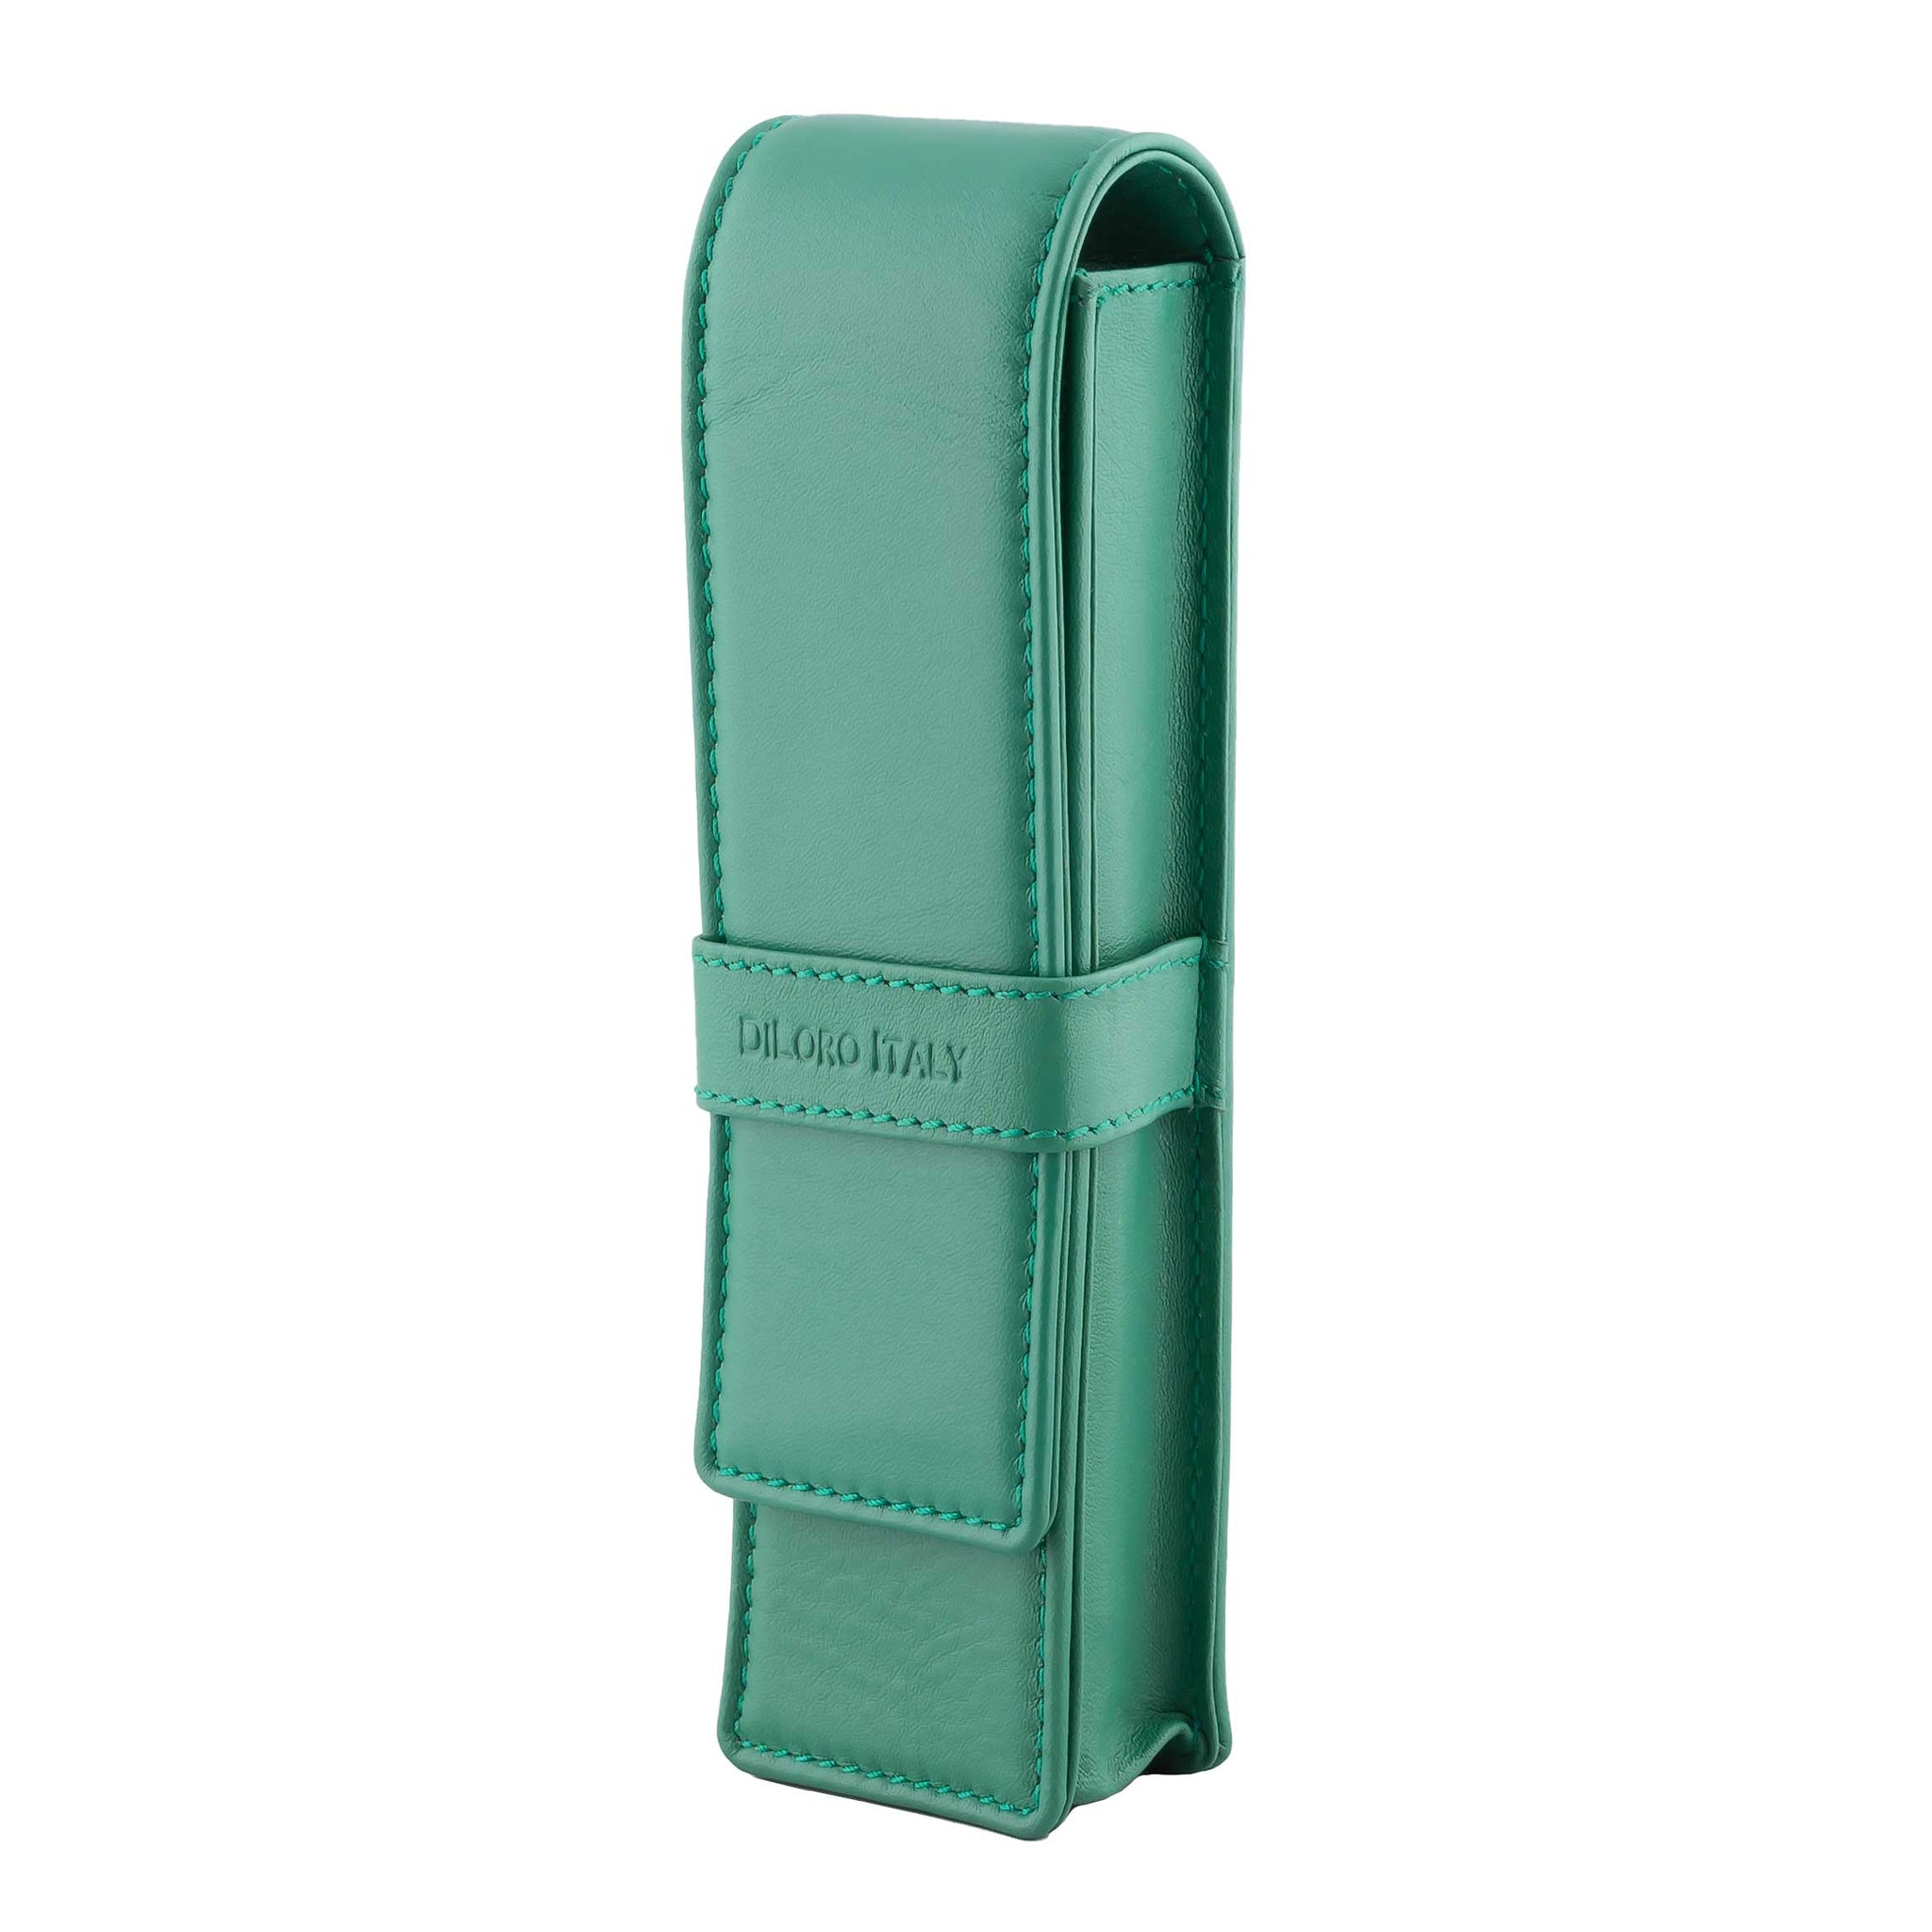 DiLoro Double Pen Case Holder in Top Quality, Full Grain Nappa Leather - Light Green